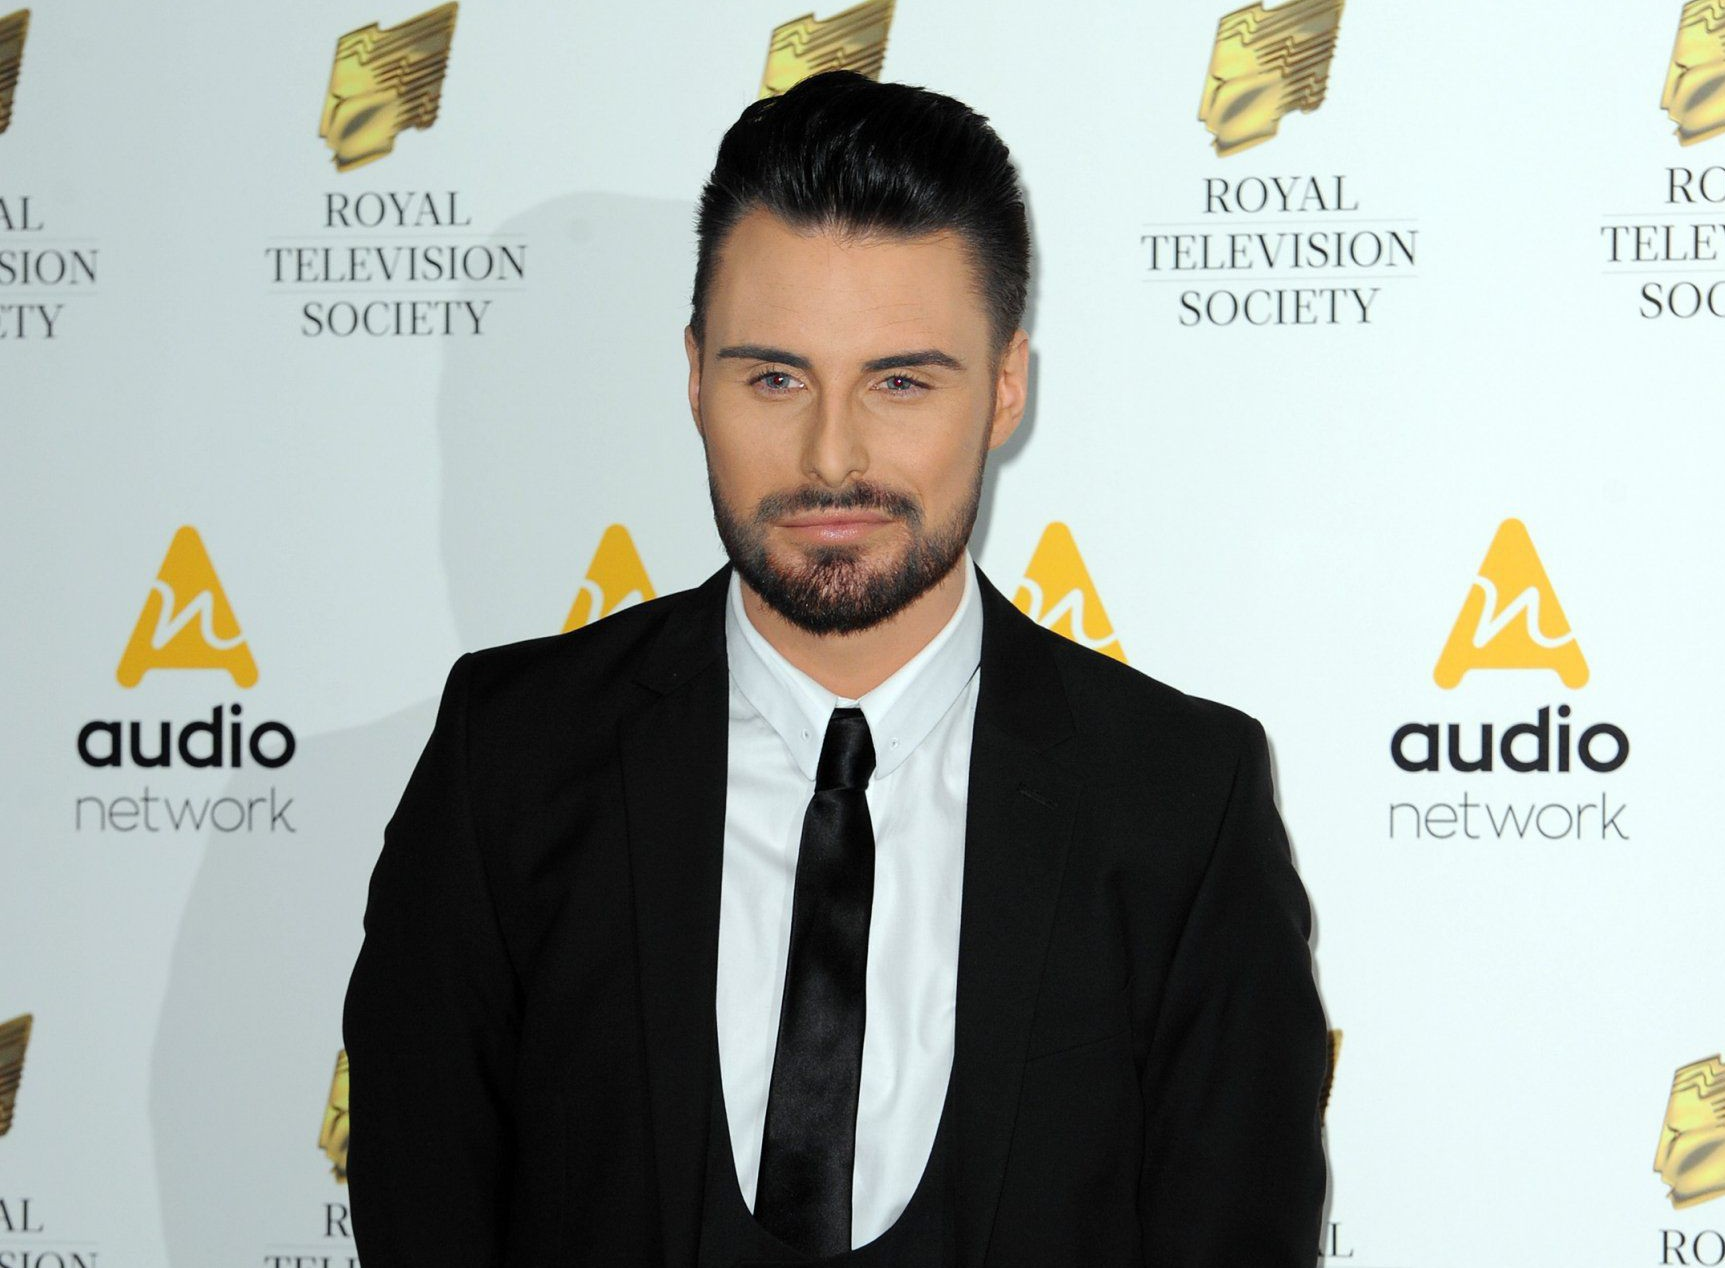 LONDON, ENGLAND - MARCH 22: Rylan Clark arrives for The Royal Television Society Programme Awards at The Grosvenor House Hotel on March 22, 2016 in London, England. (Photo by Eamonn M. McCormack/Getty Images)